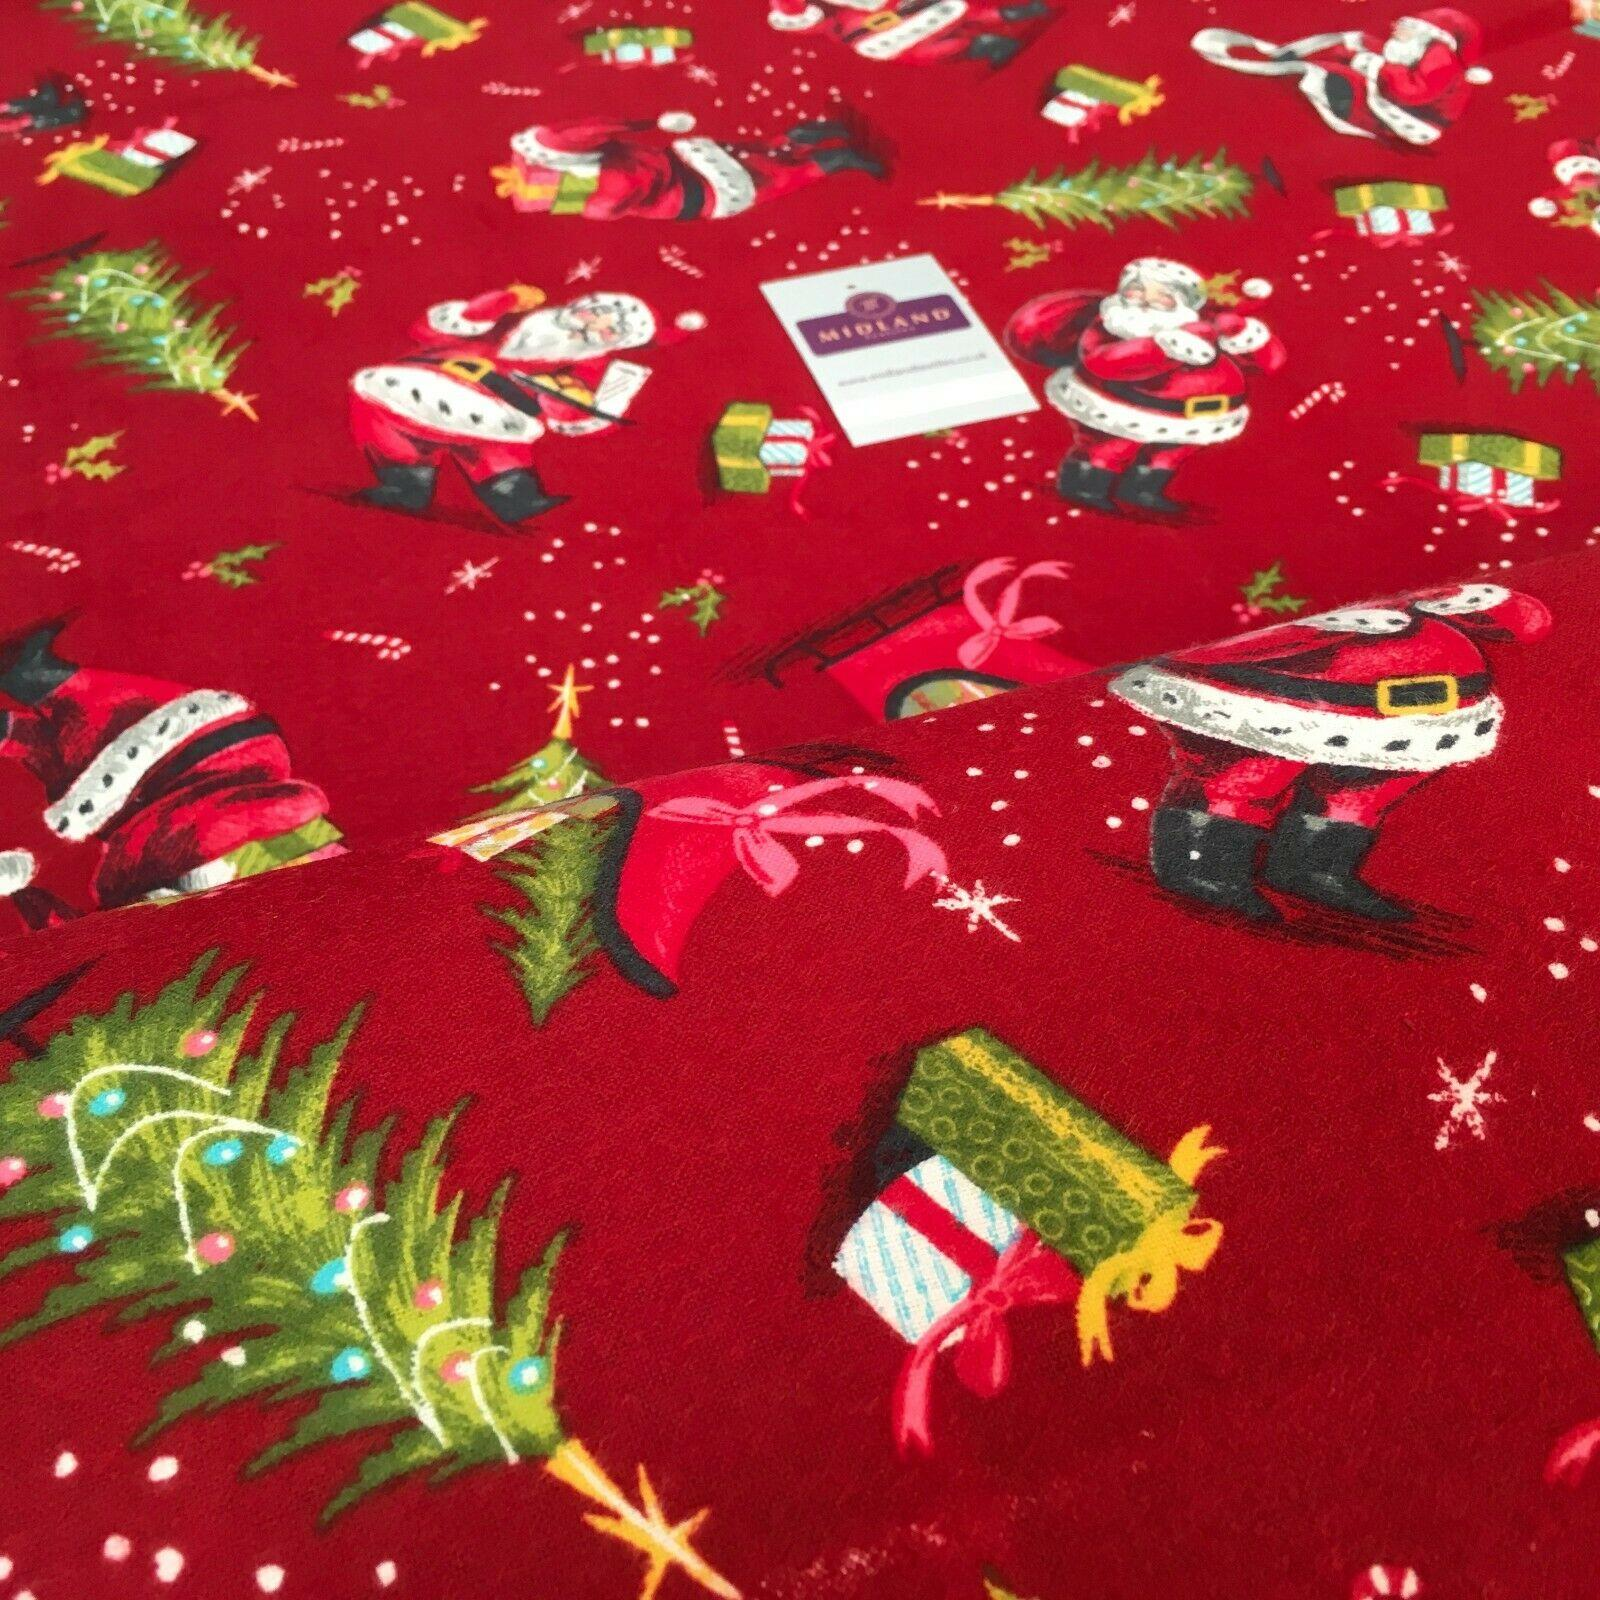 Red Father Christmas Sleigh Cotton Winceyette Soft Brushed Fabric 150cm MK1224-3